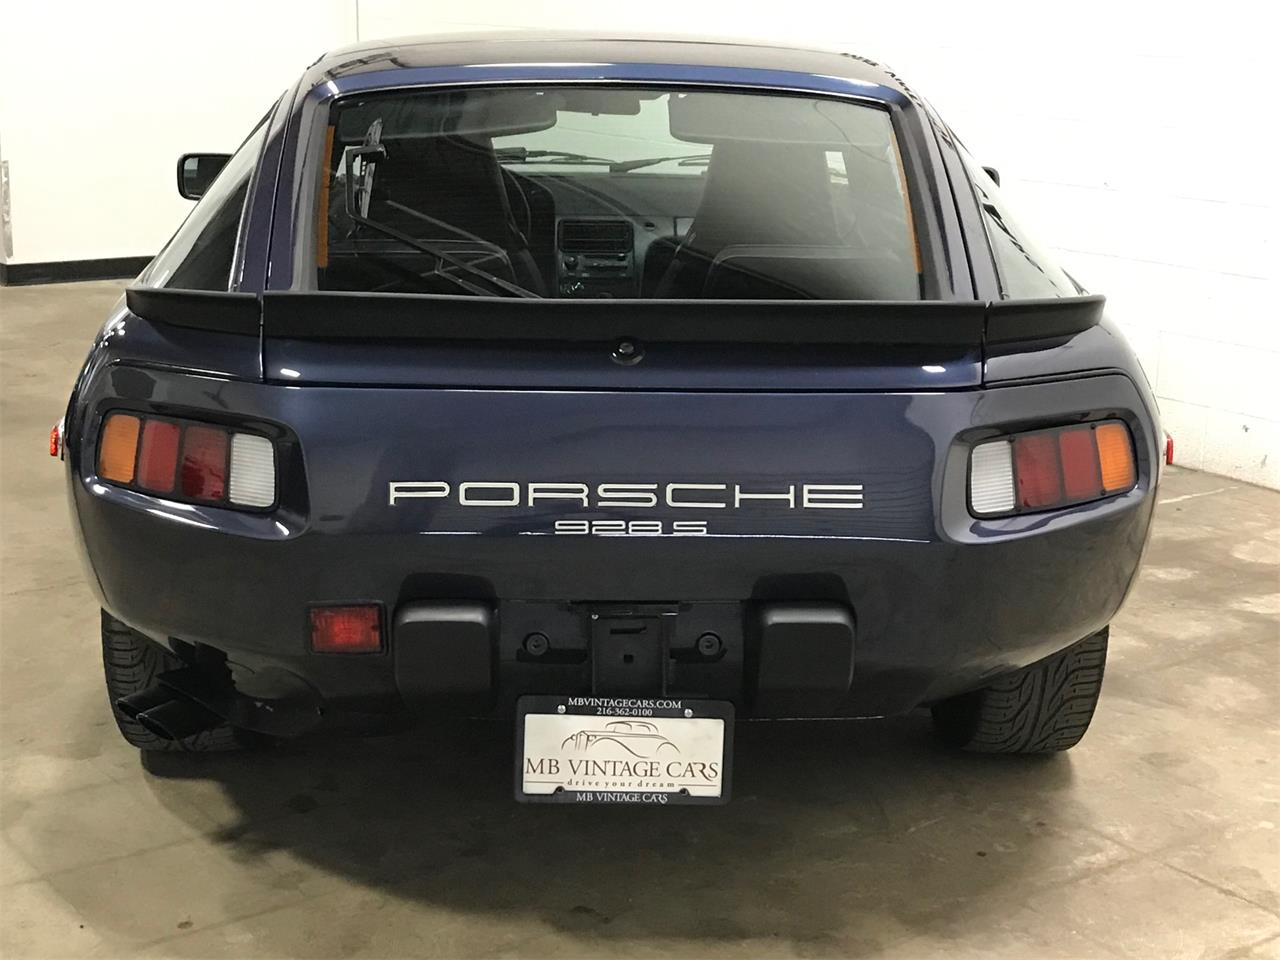 1985 Porsche 928S for sale in Cleveland, OH – photo 6